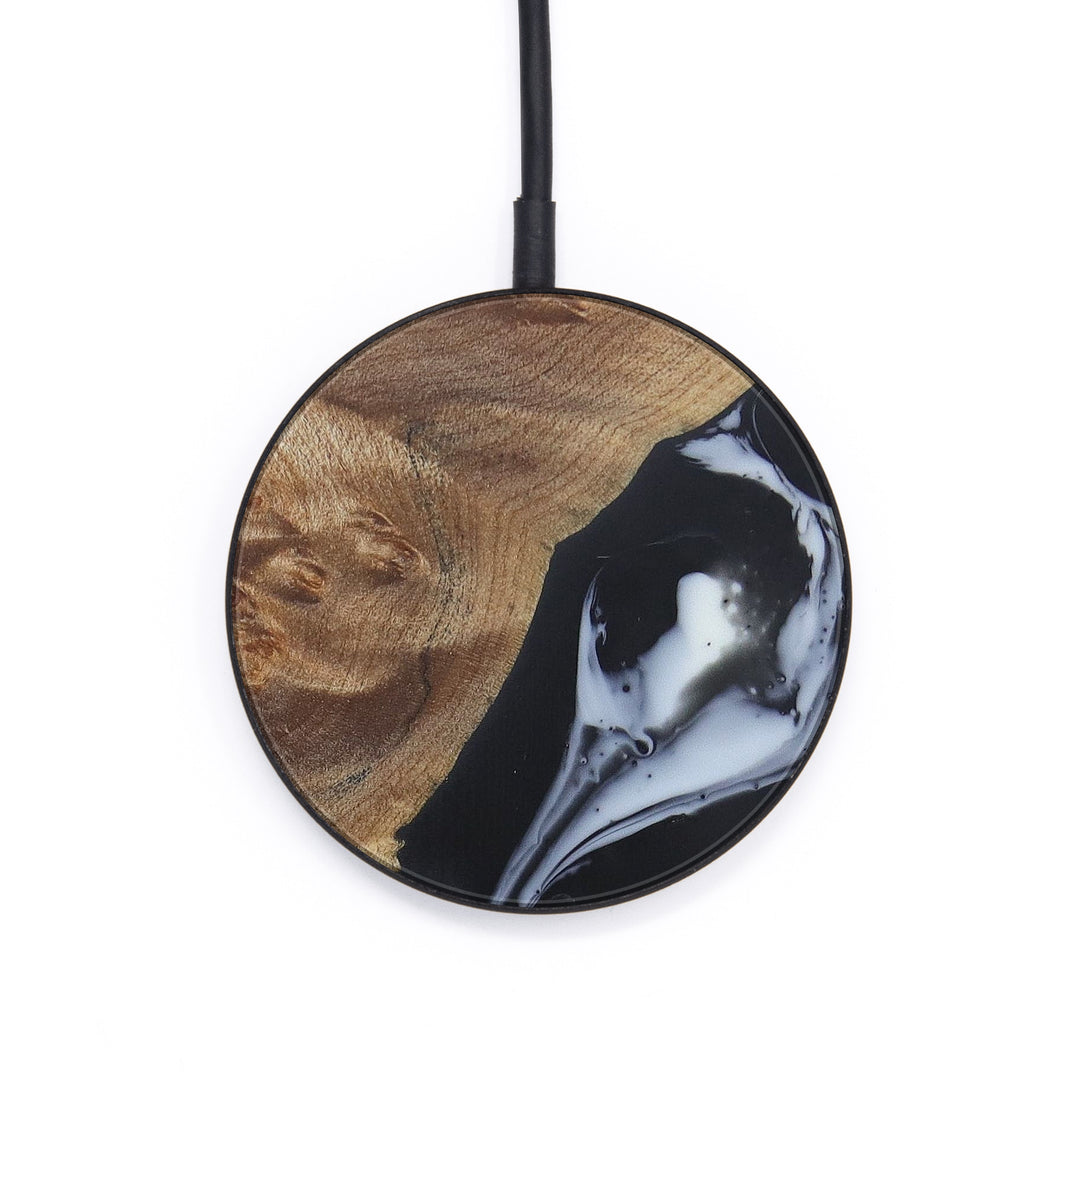 Circle Wood+Resin Wireless Charger - Me (Black & White, 406279)